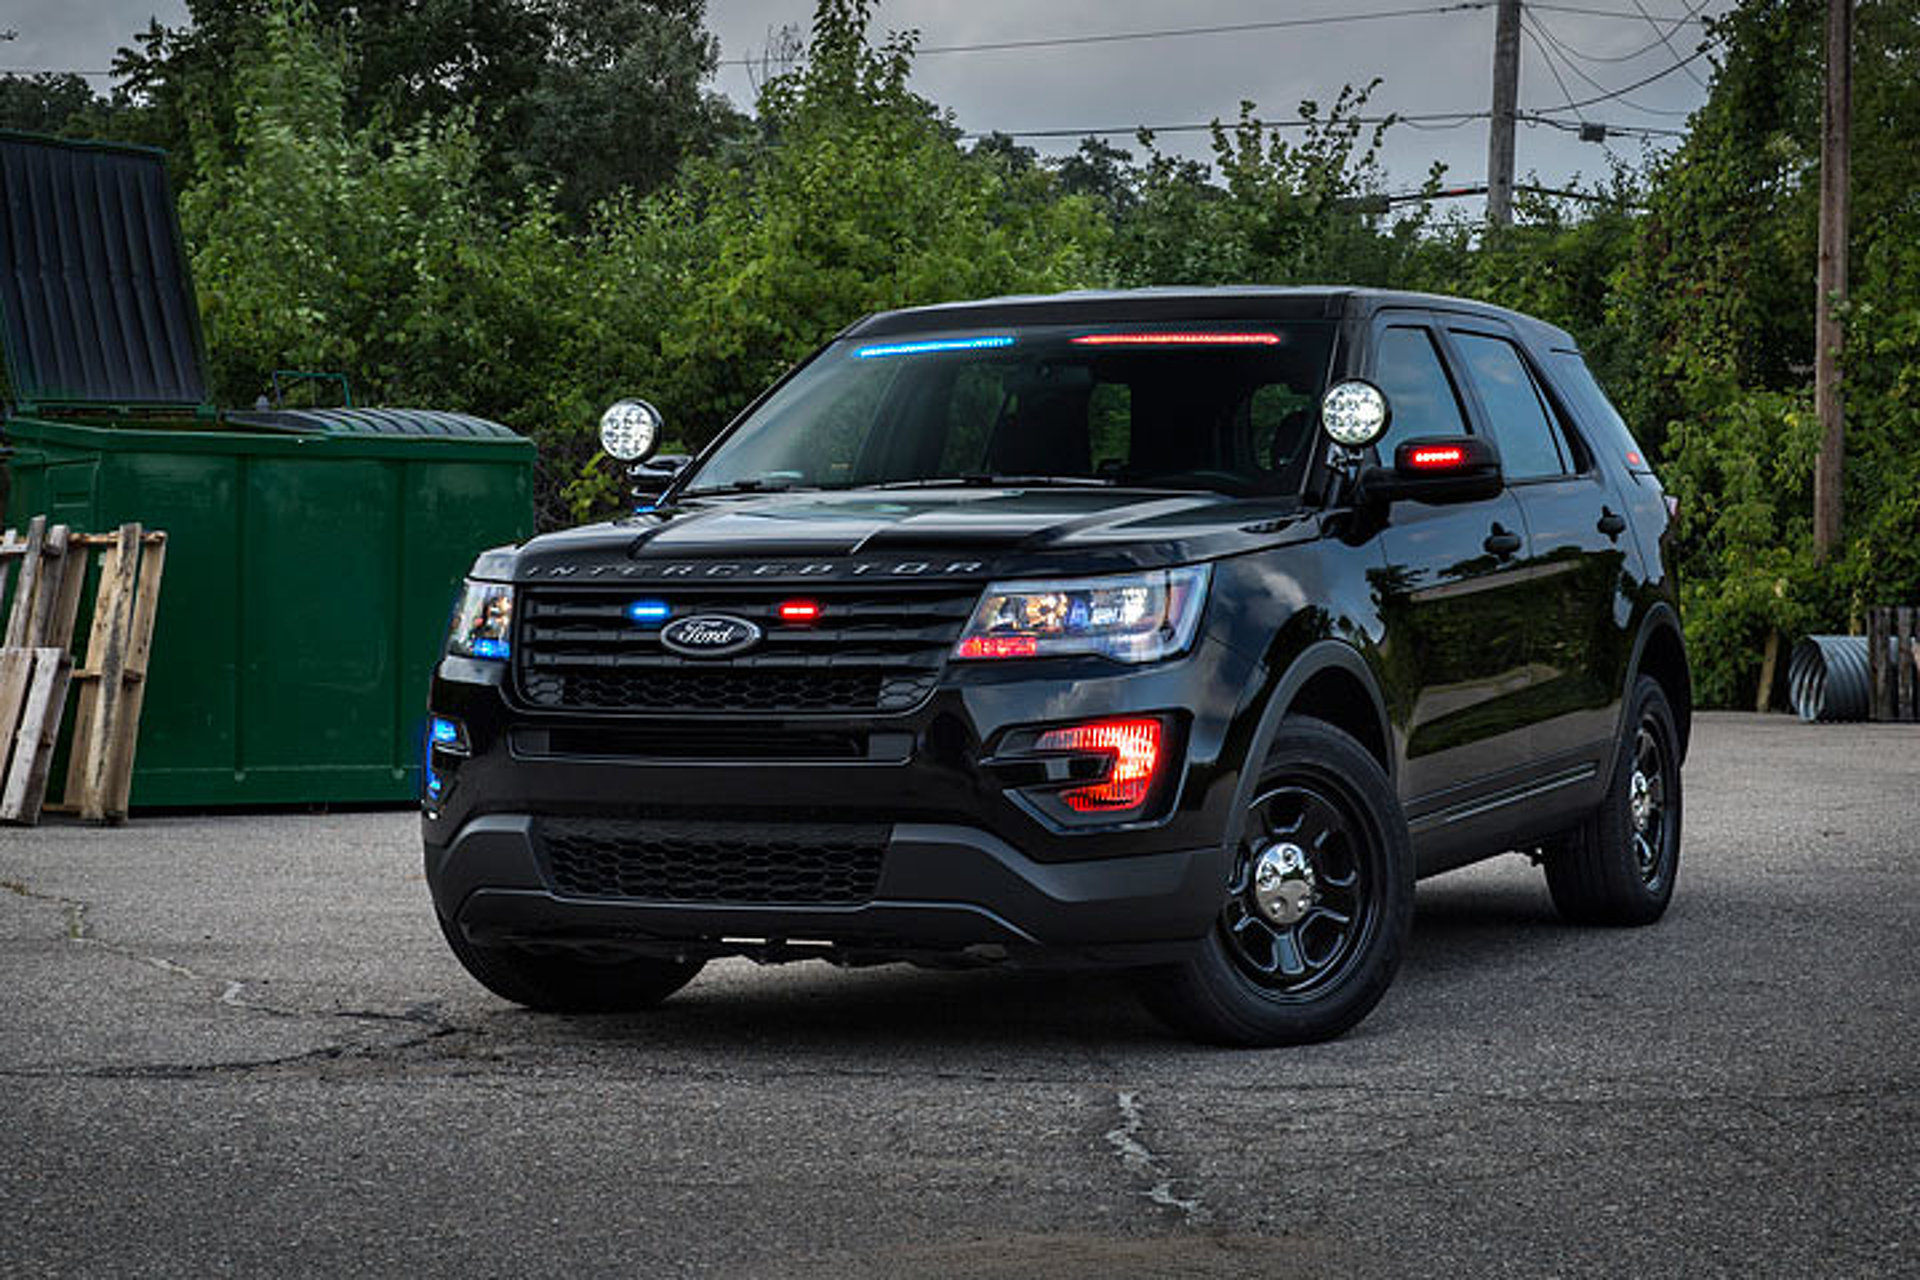 hight resolution of ford explorer police interceptor diagrams wiring diagram page 2018 ford interceptor wiring diagram ford interceptor wiring diagram